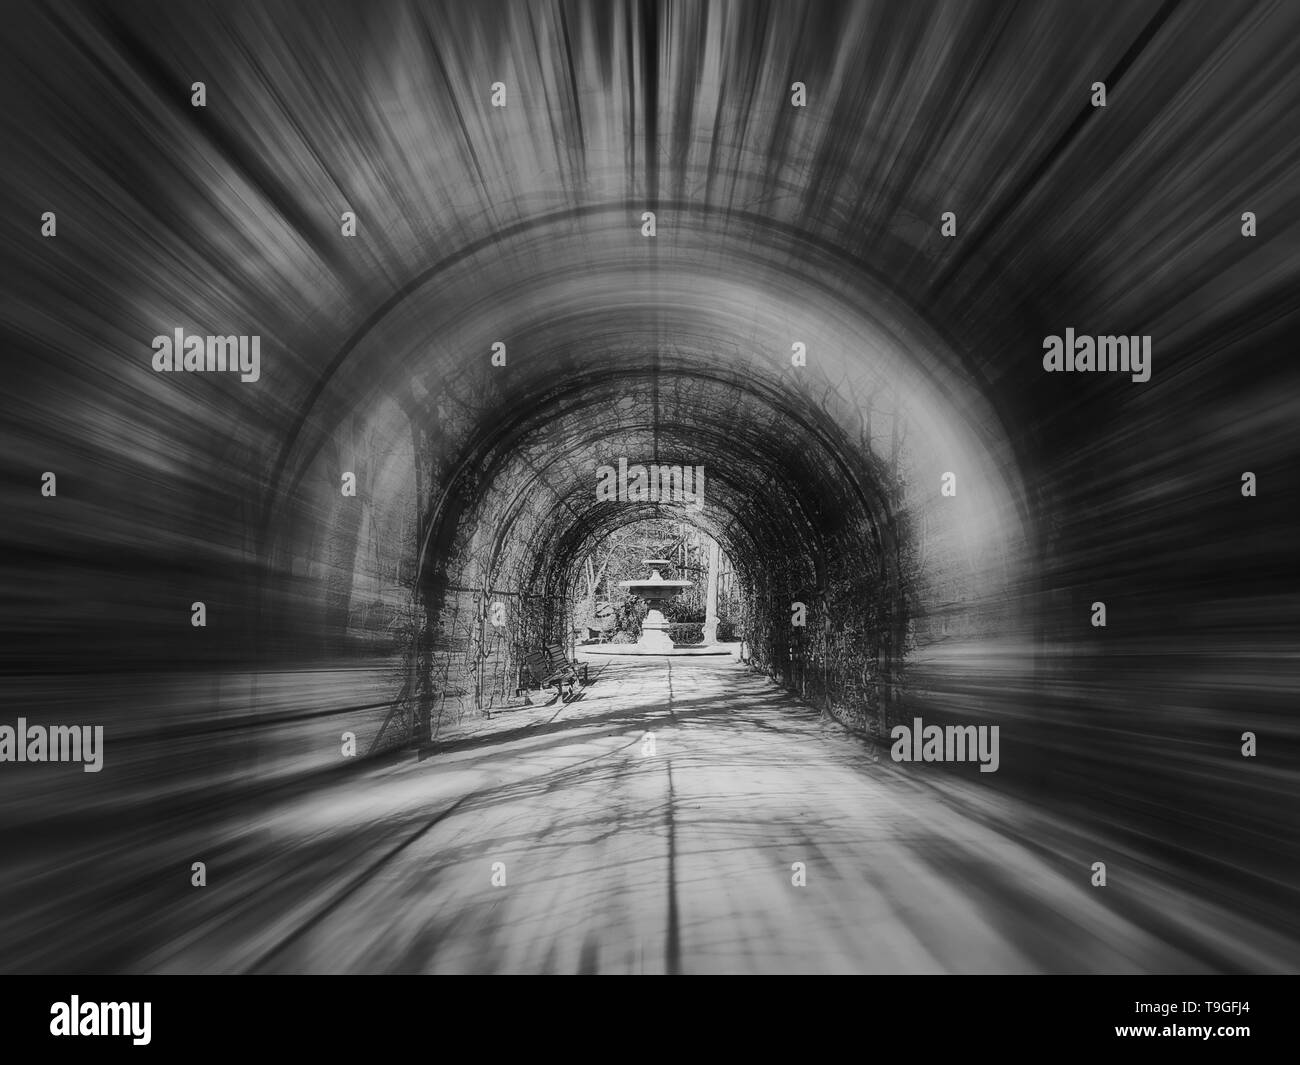 Abstract black and white scene, motion blur effect, of a tunnel alley in the Orangerie park in Strasbourg, France. - Stock Image